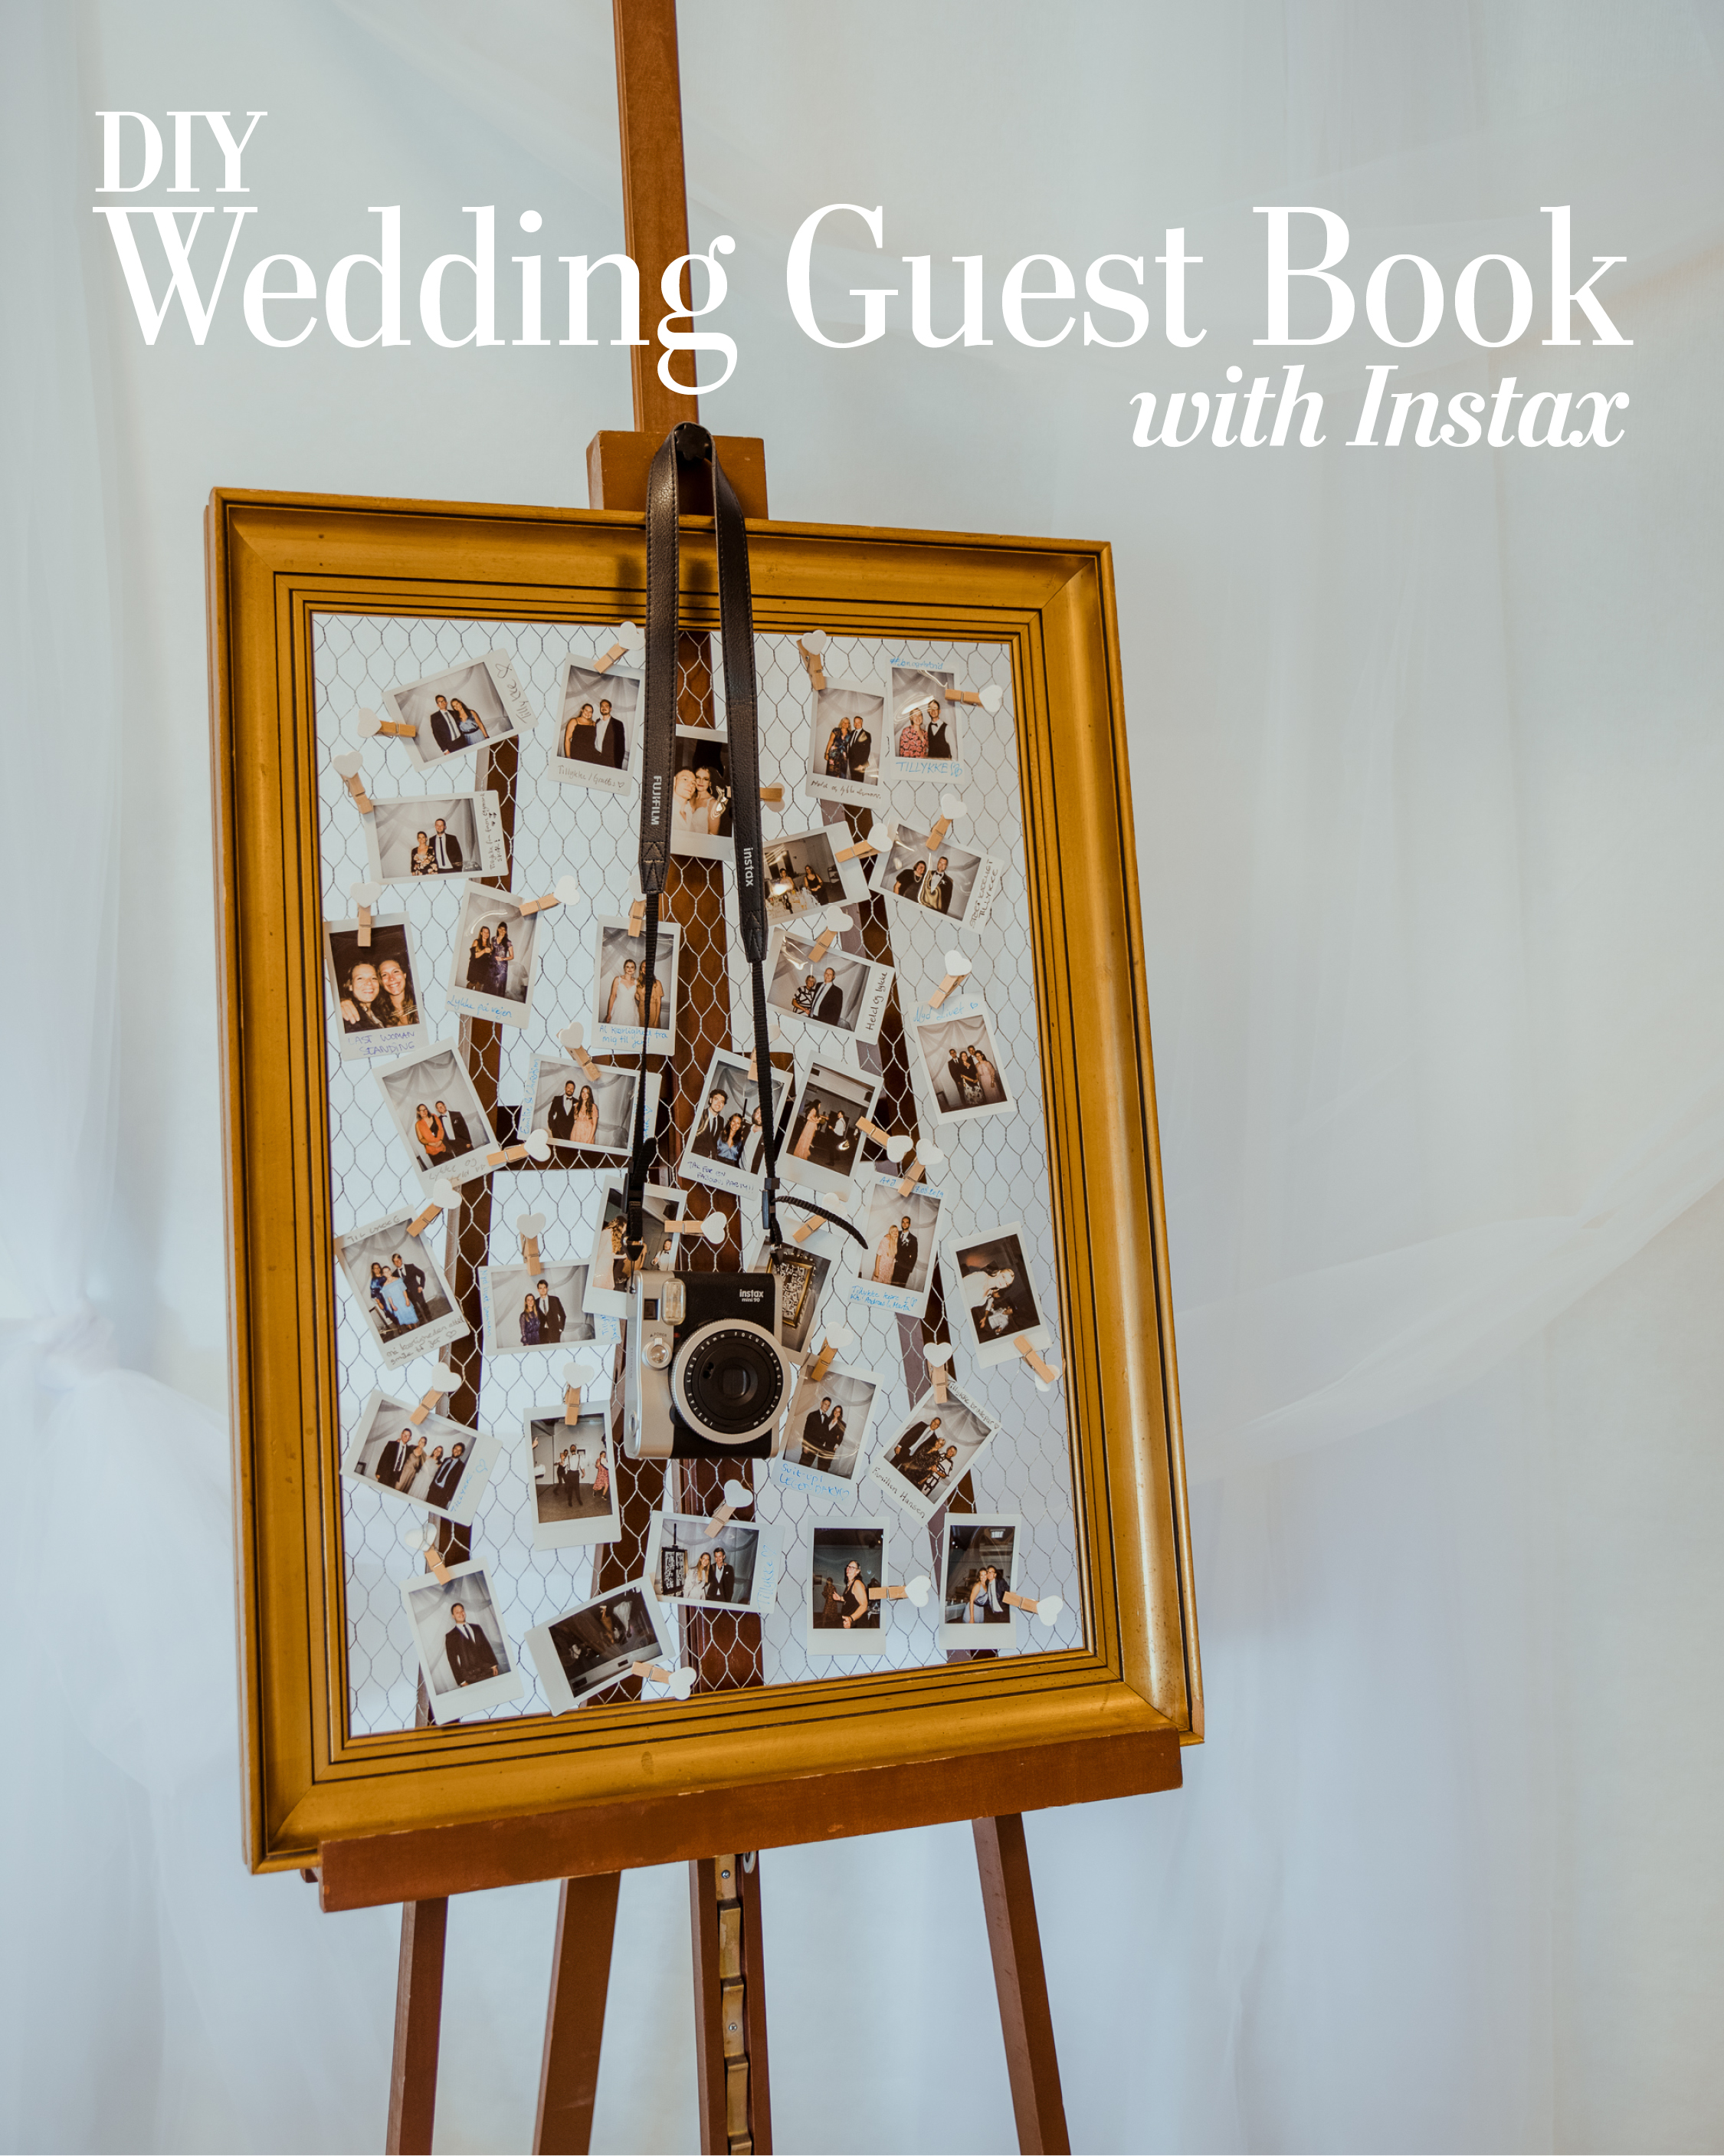 Instead of the traditional wedding guest book we wanted to do a instant photo wedding guest book. The guests wrote their regards on the back of the picture - and absolutely loved it!  Instant photo wedding guest book made from antique frame and Instax photos